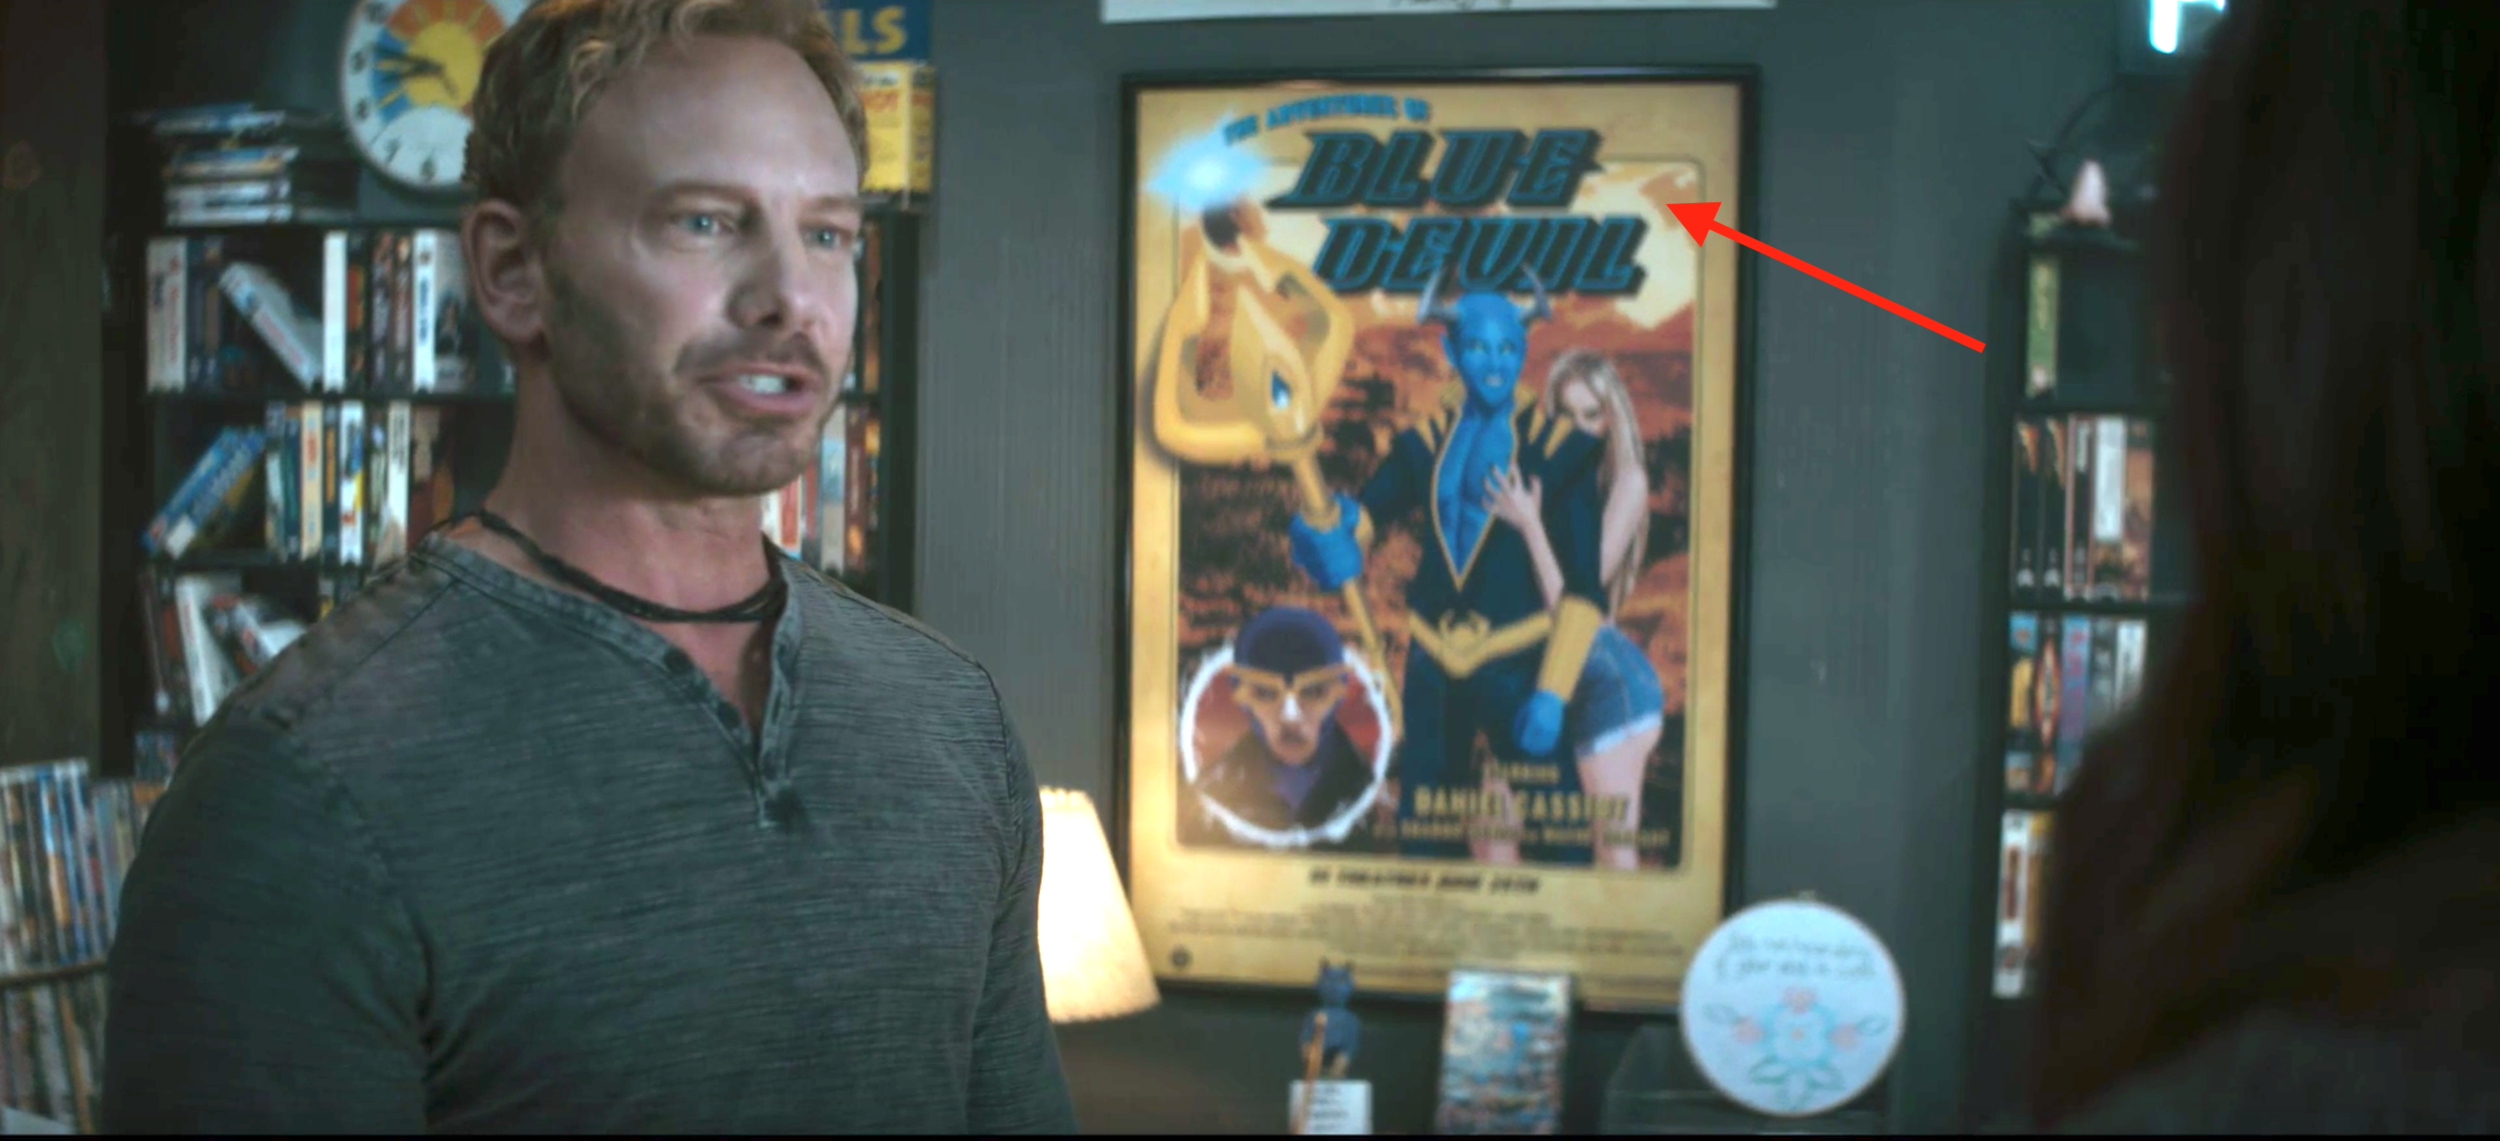 Gratuitous   Blue Devil   cameo, ladies and gentleman. And Ian Ziering!?!?!?!